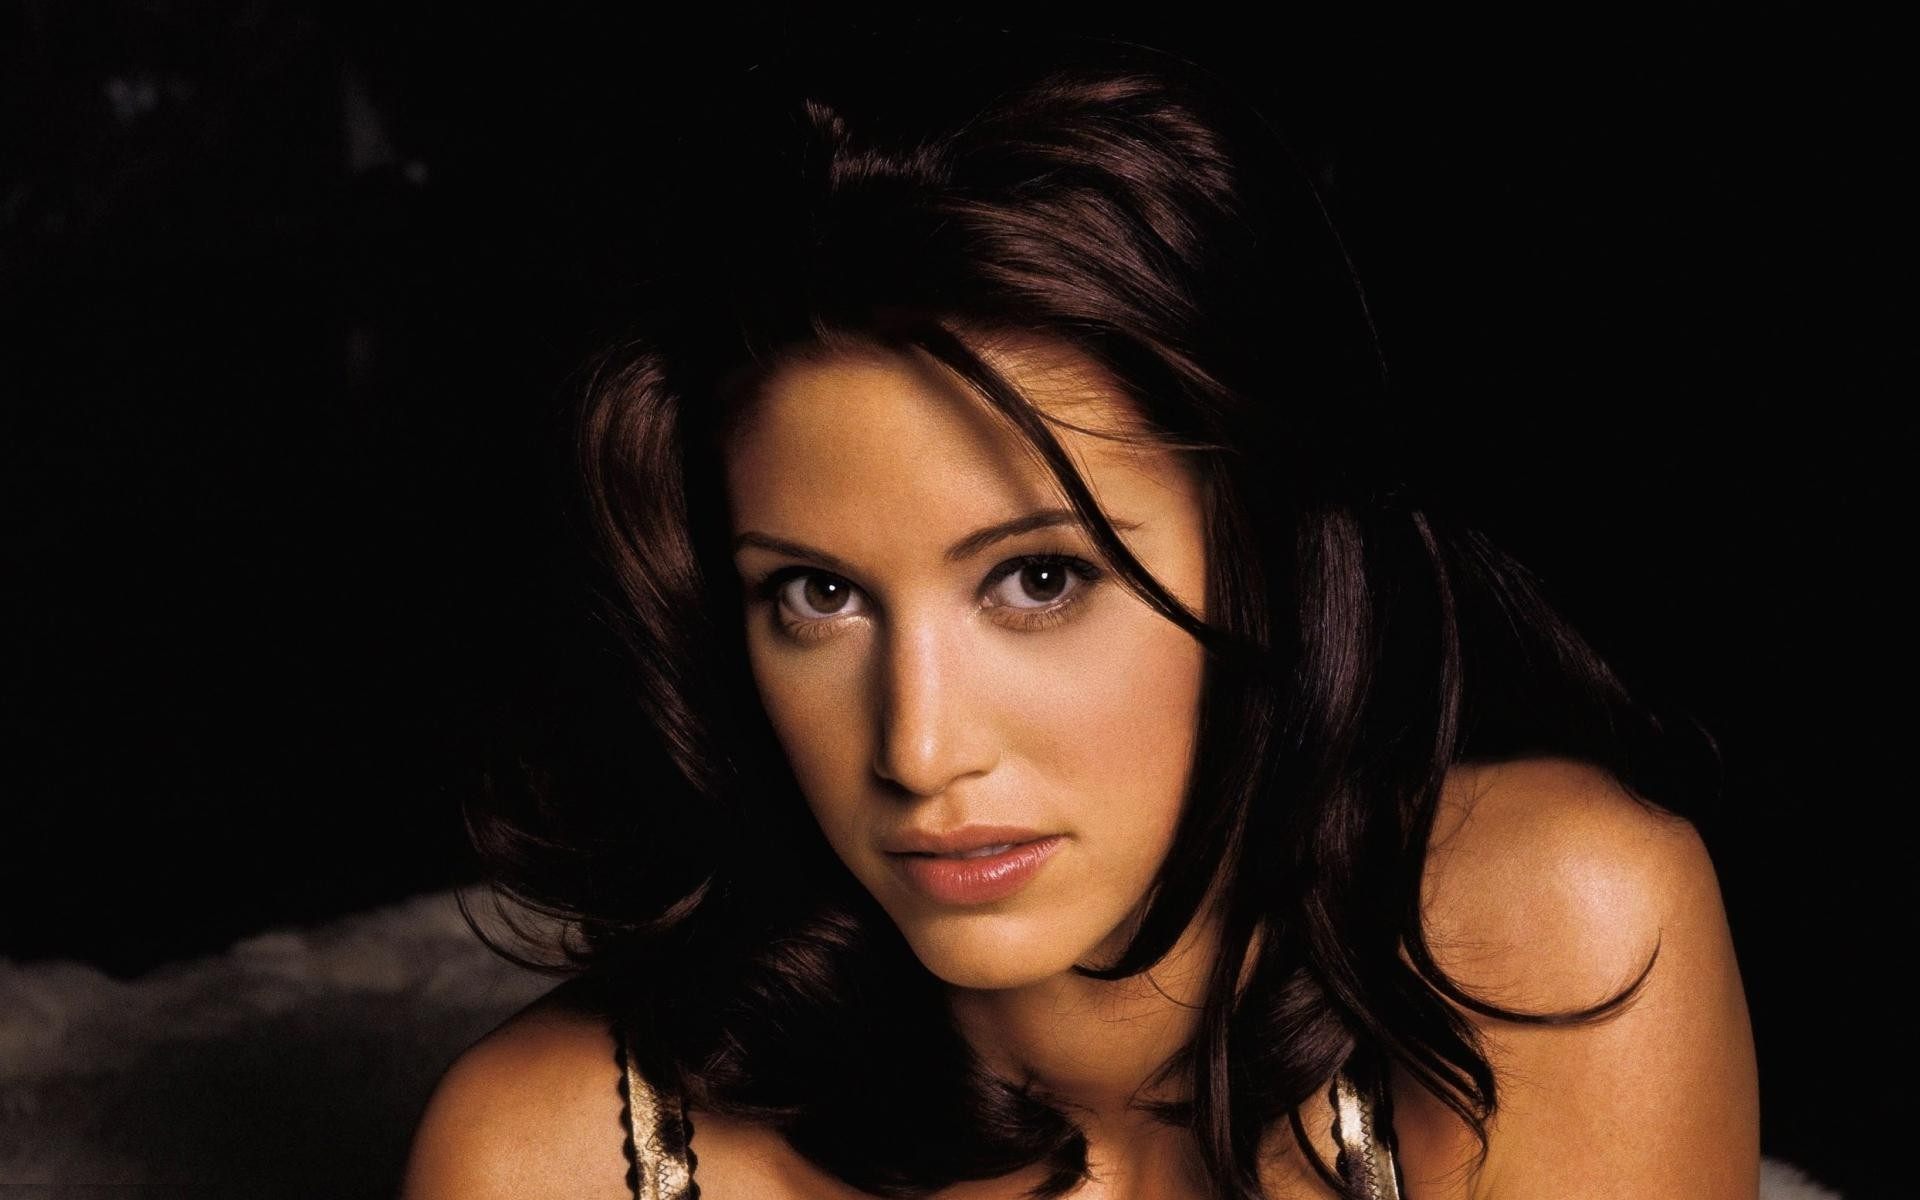 shannon elizabeth wallpaper 56375